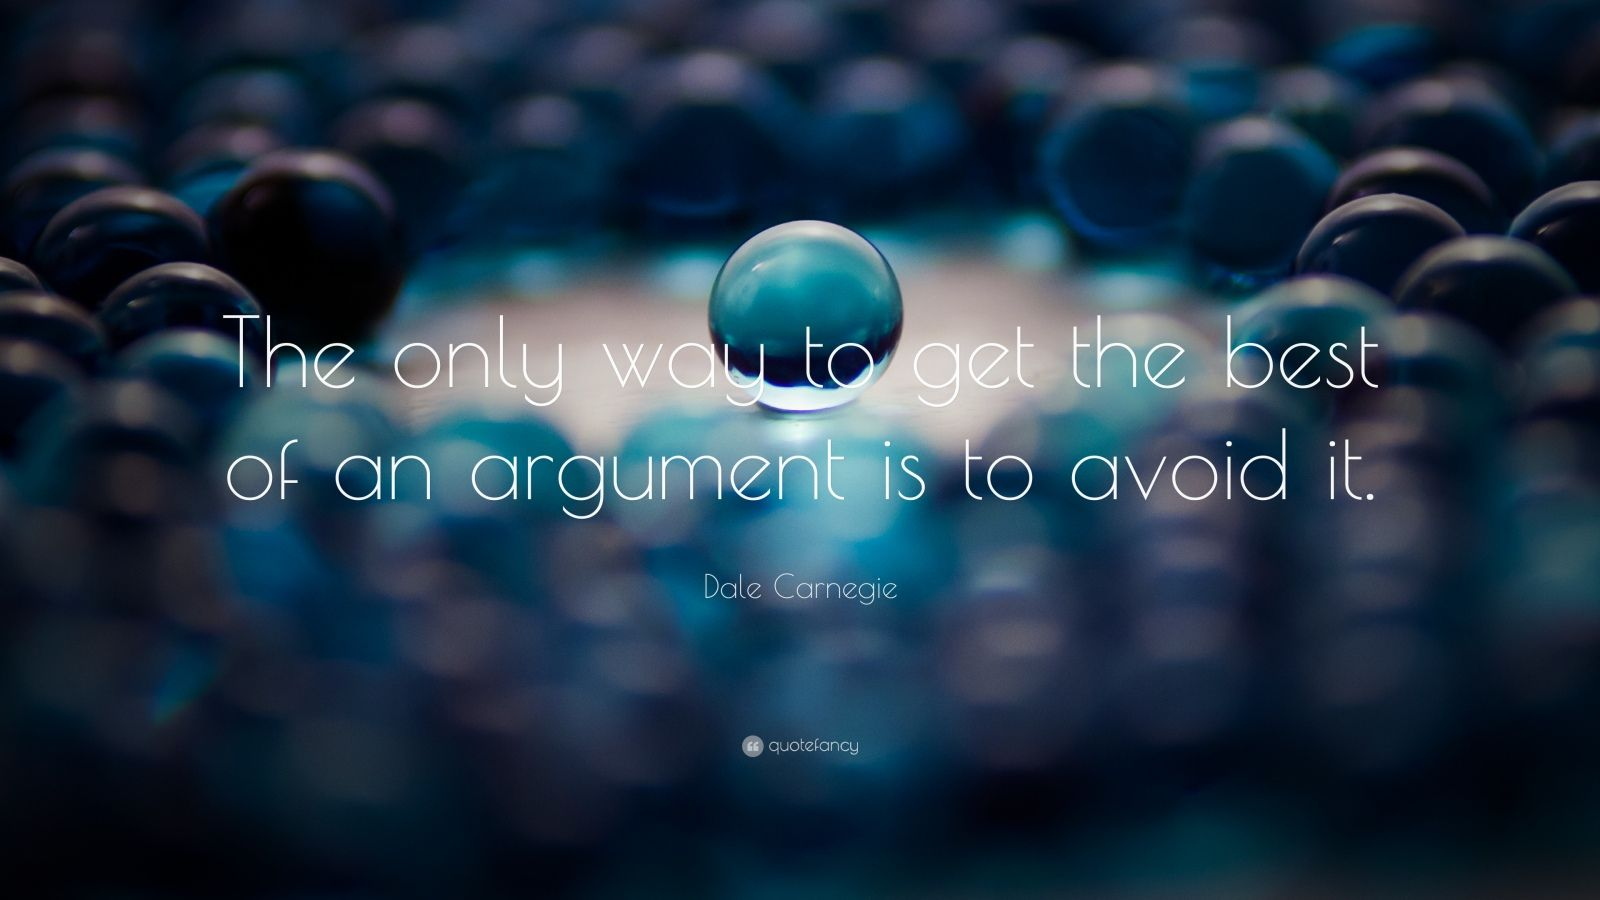 Dale Carnegie Quote: The only way to get the best of an argument is ...